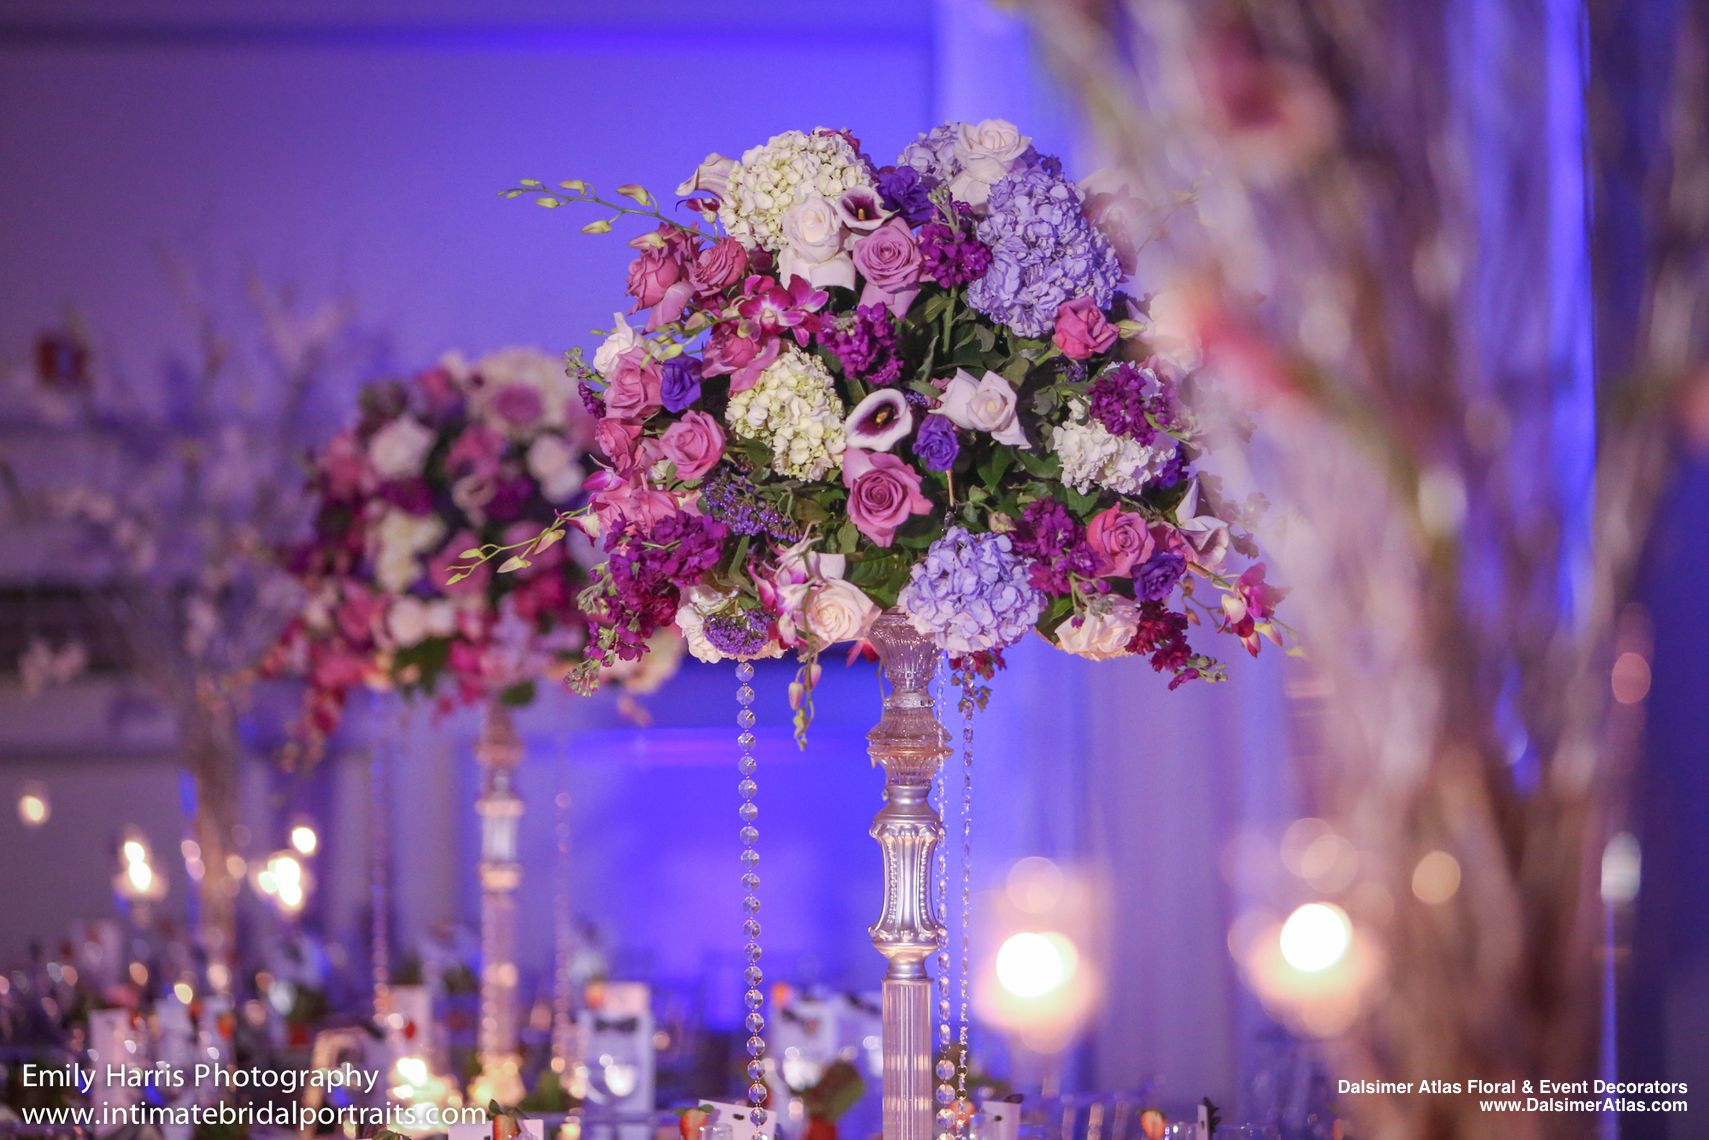 wedding-florist-flowers-decorations-bnai-israel-boca-raton-florida-dalsimer-atlas-22